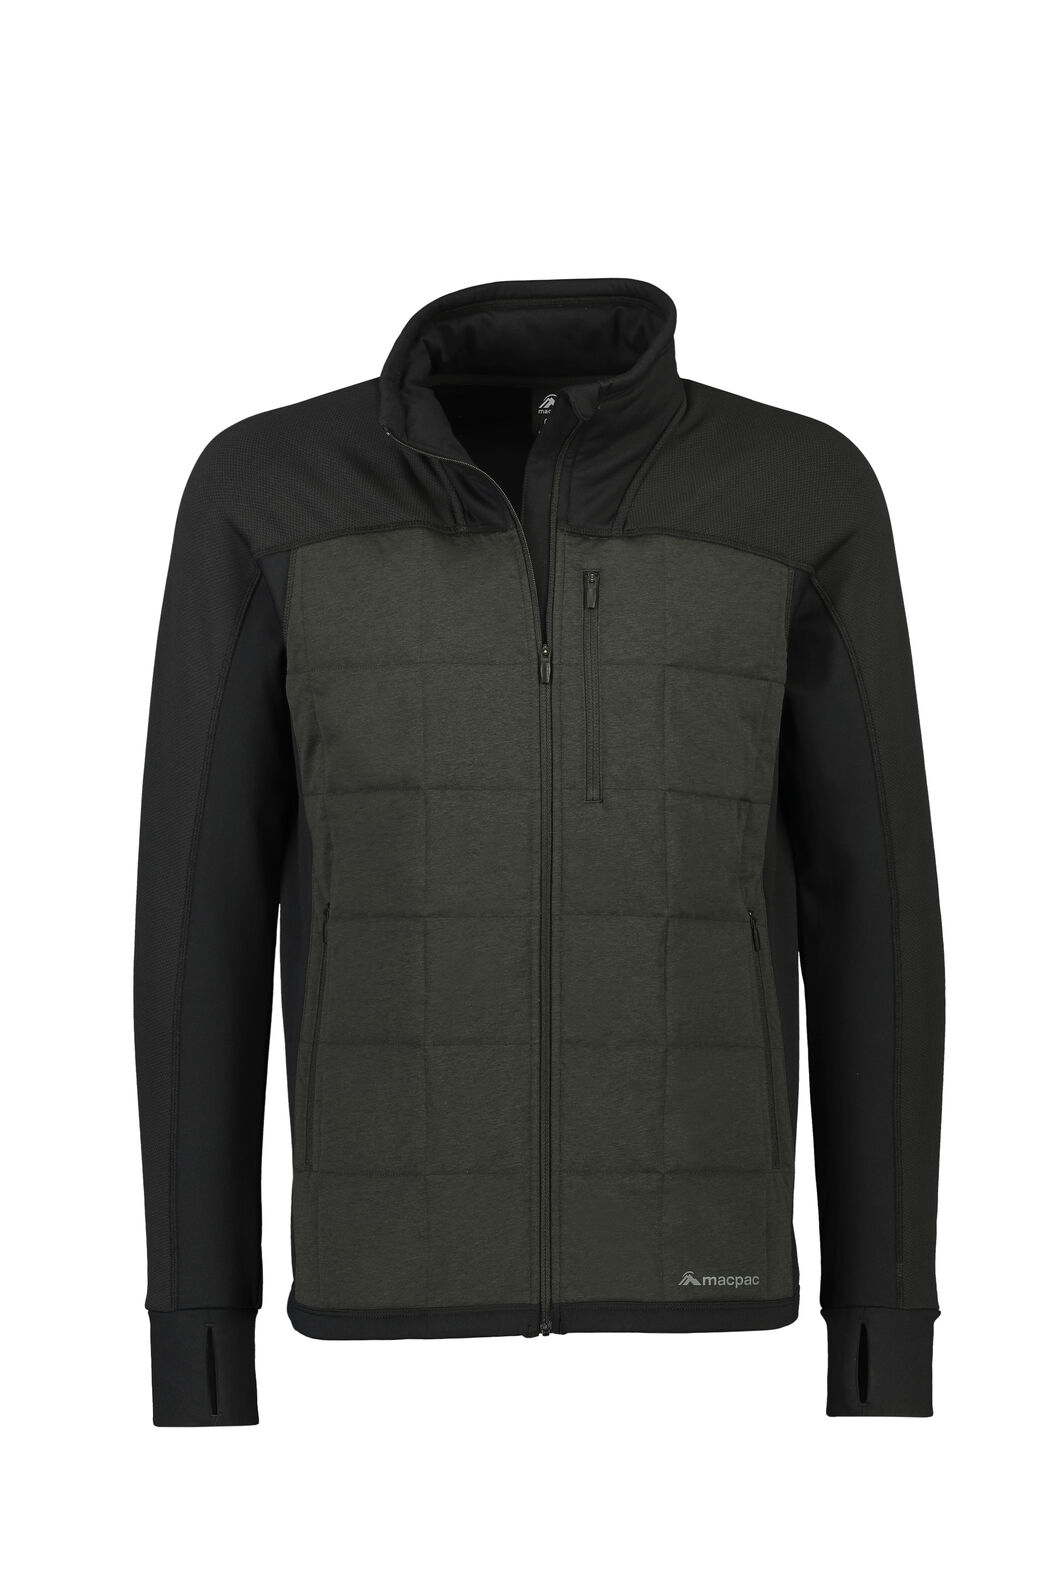 Macpac Accelerate PrimaLoft® Jacket - Men's, Black, hi-res